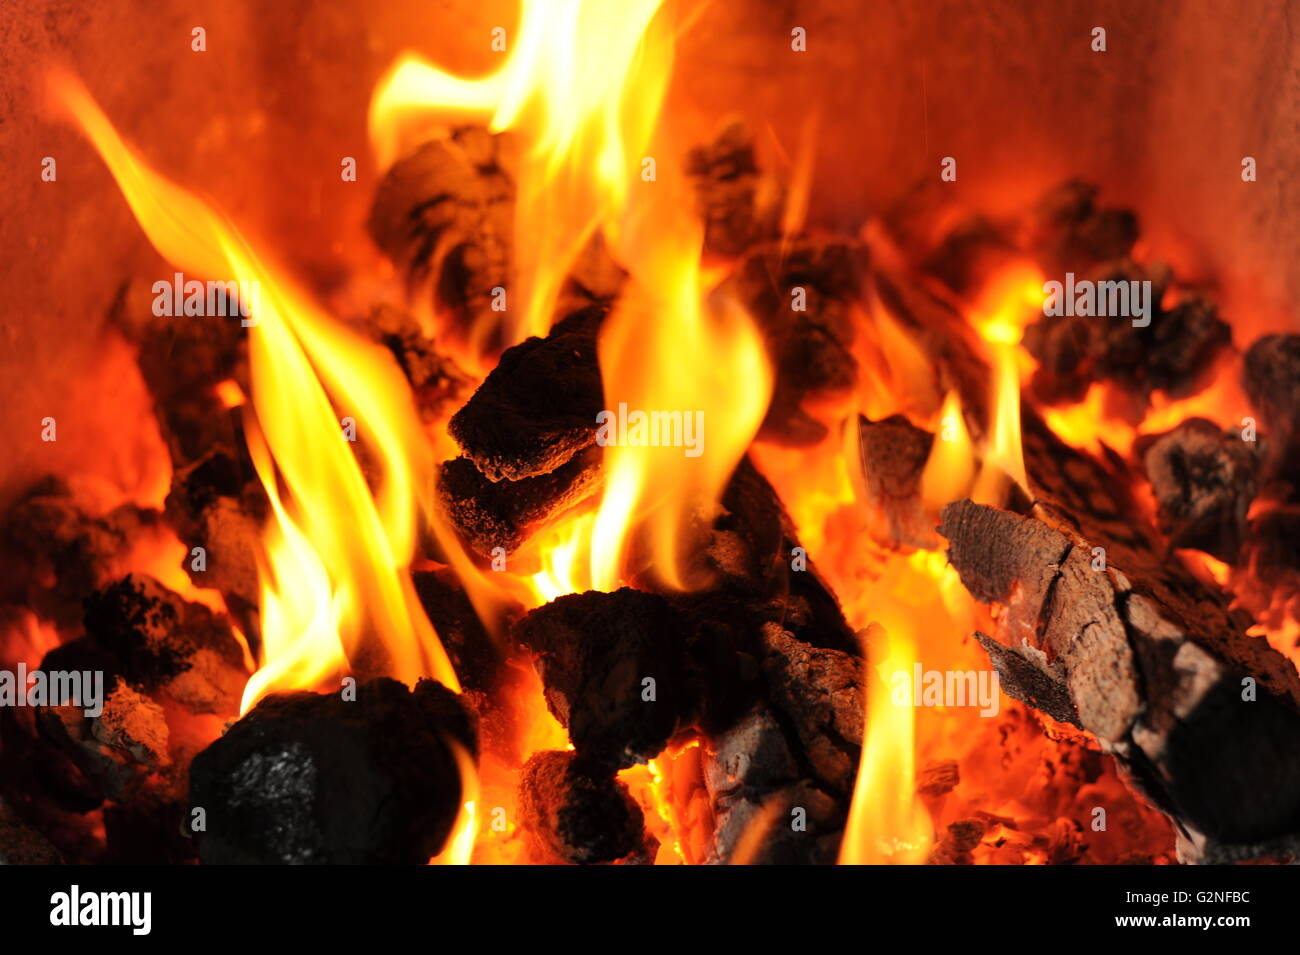 coals burning in a fire place - Stock Image